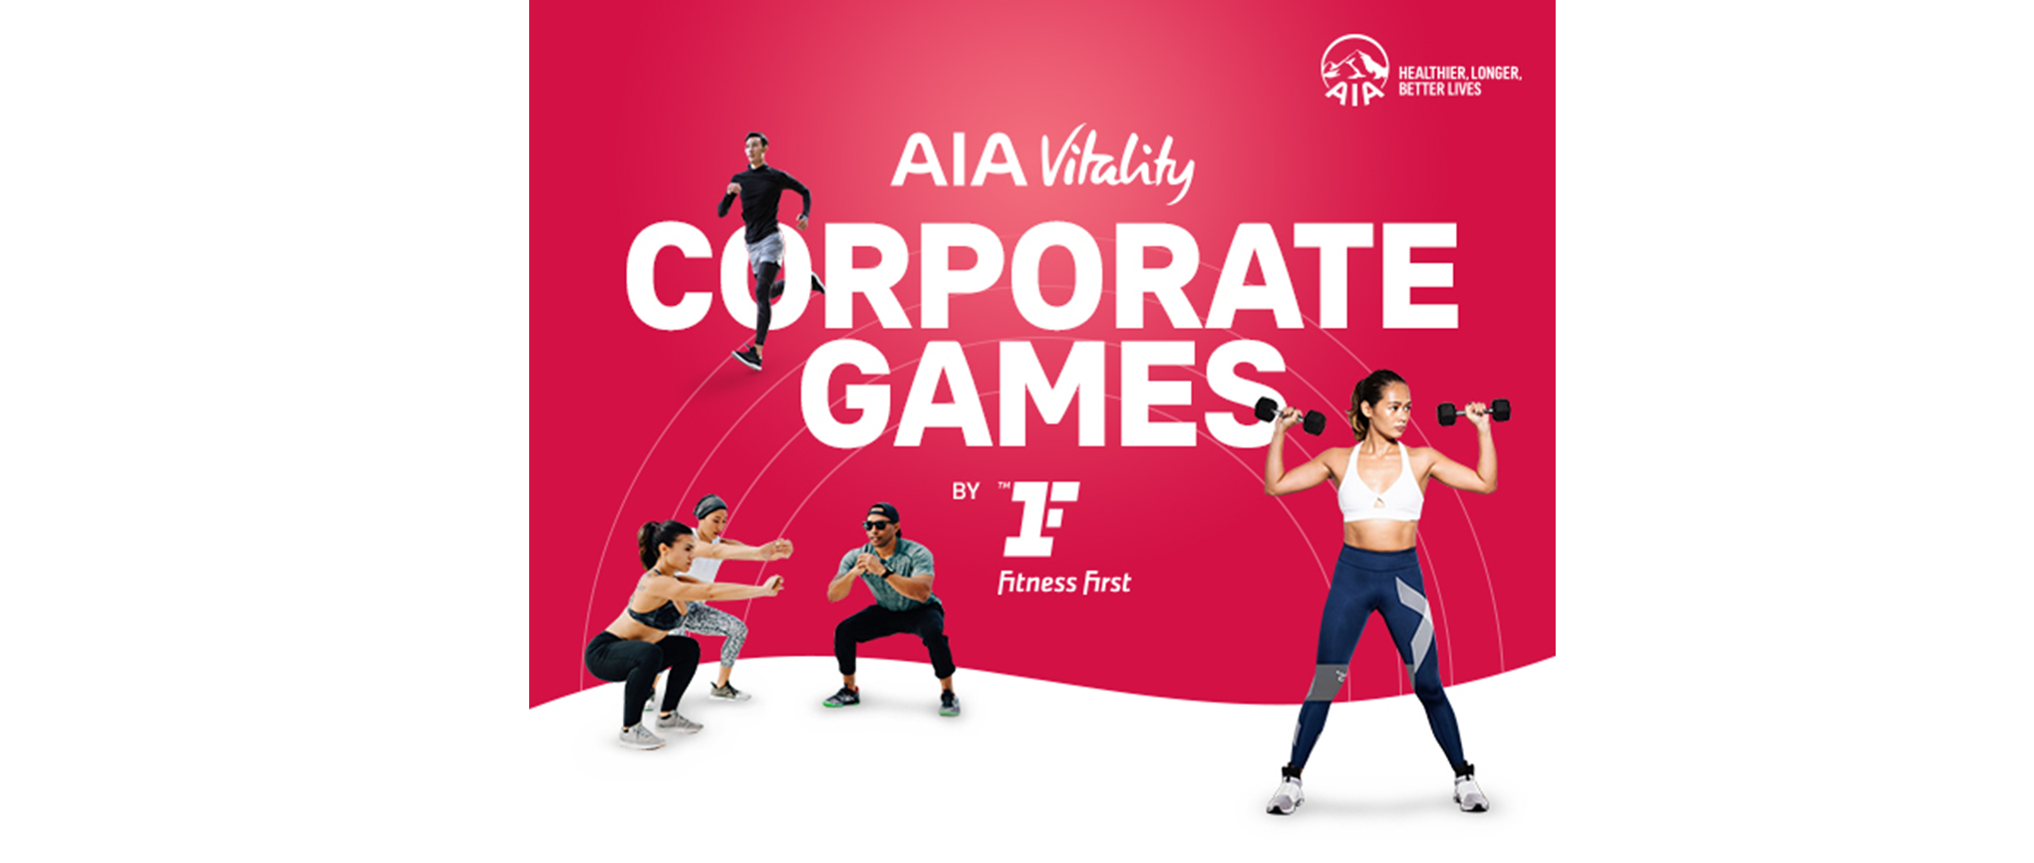 AIA Vitality Corporate Games by Fitness First - 18/05 Banner Image